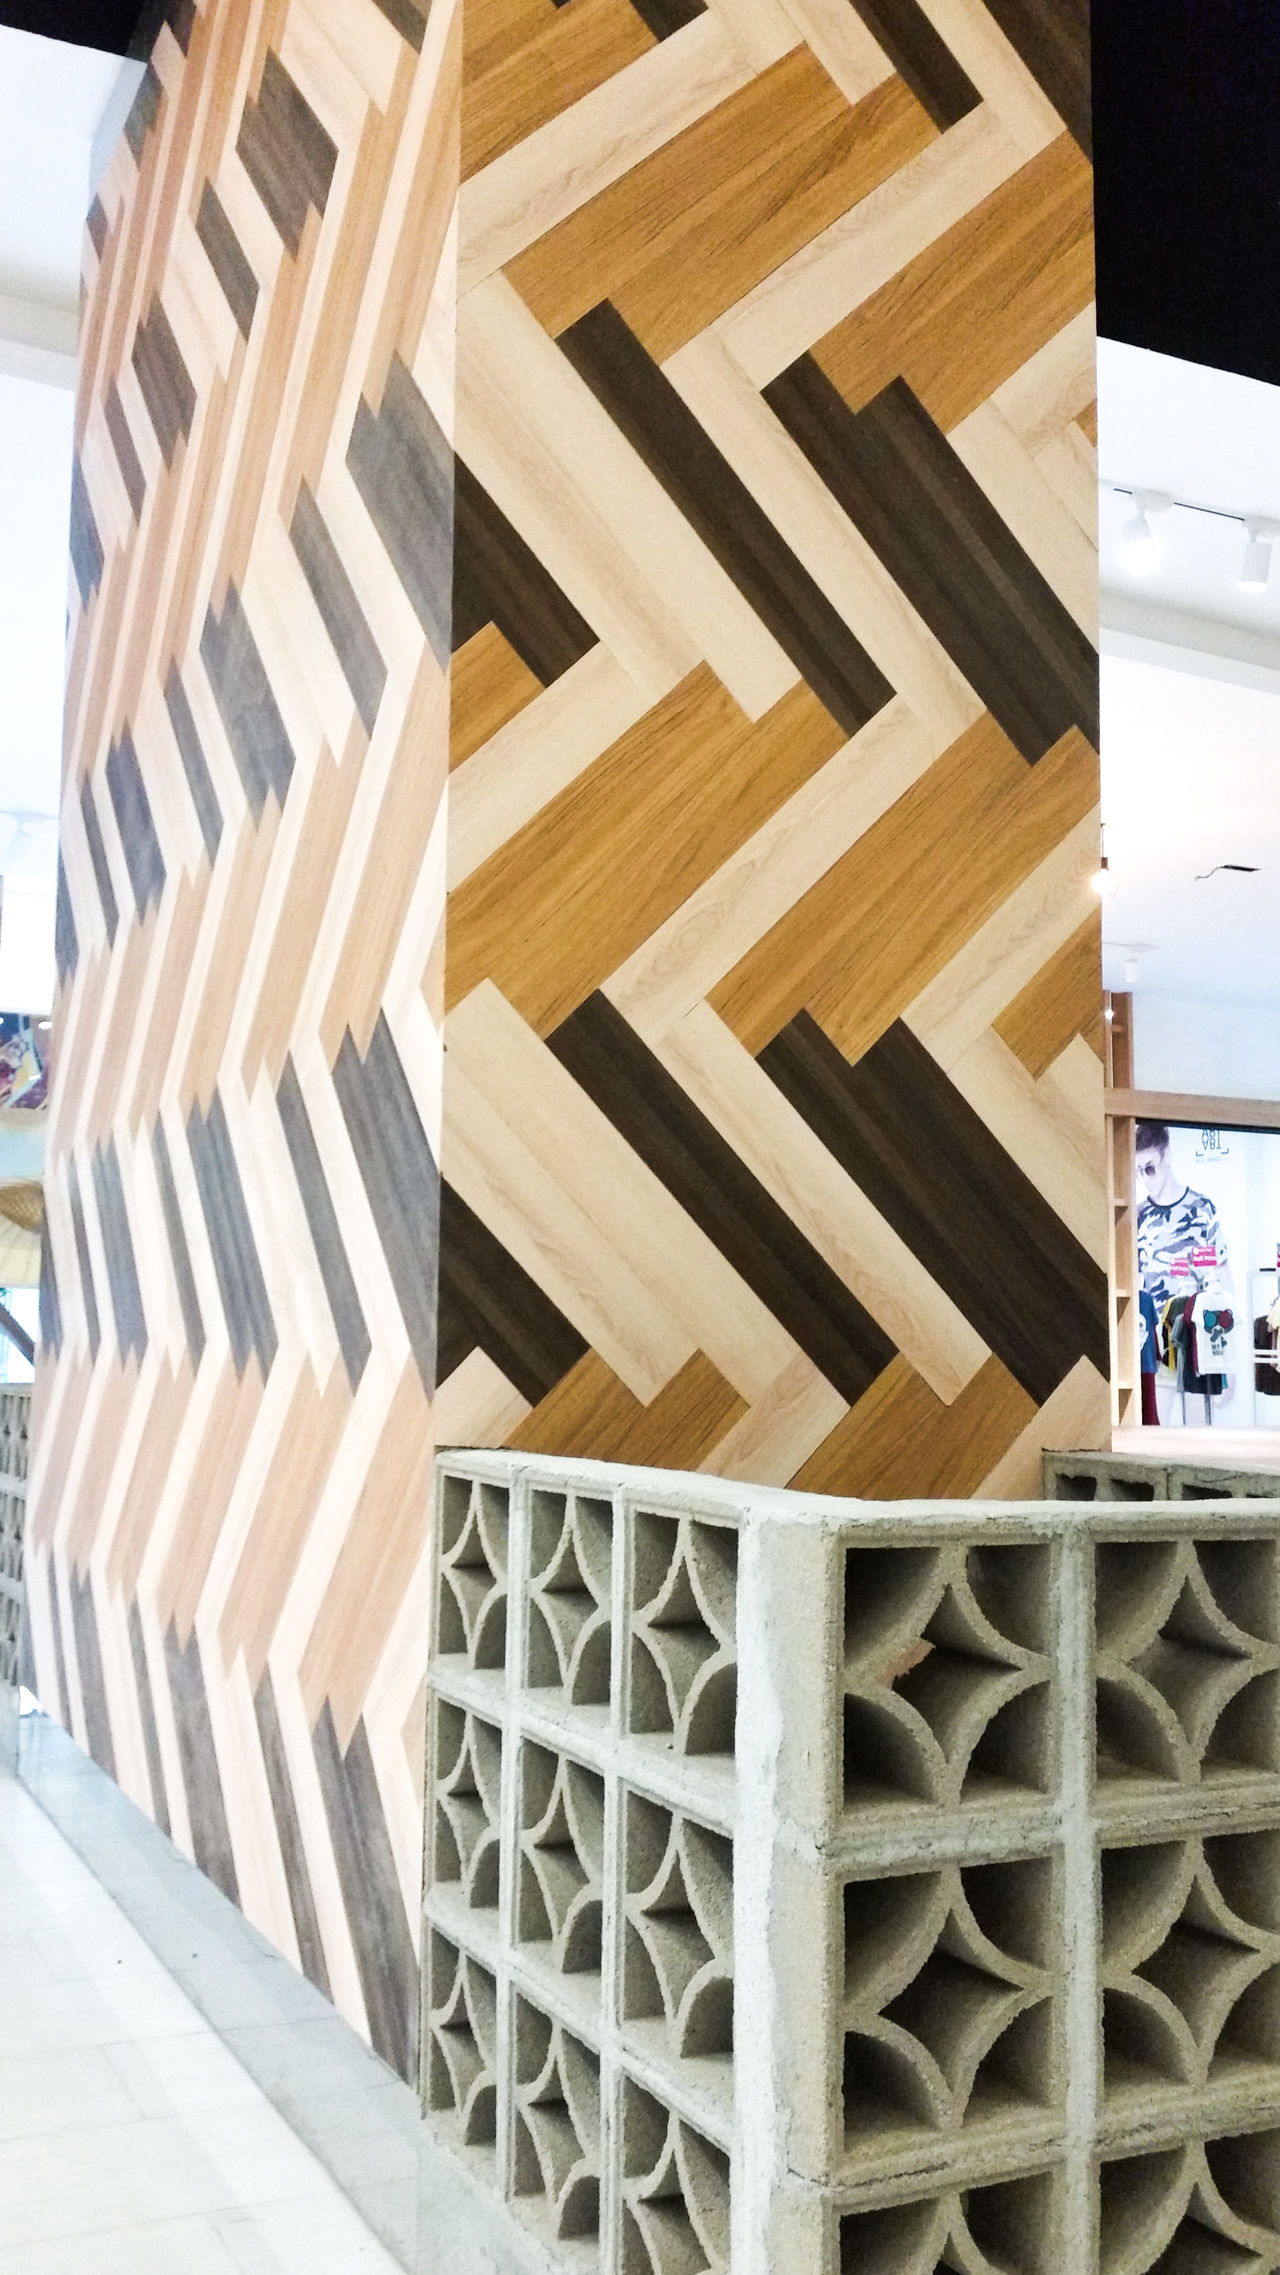 Pattern No People Day Indoors  Close-up Pillars Shopping Mall Architecture Indoors  Wood Concrete Patterns Concrete Pattern